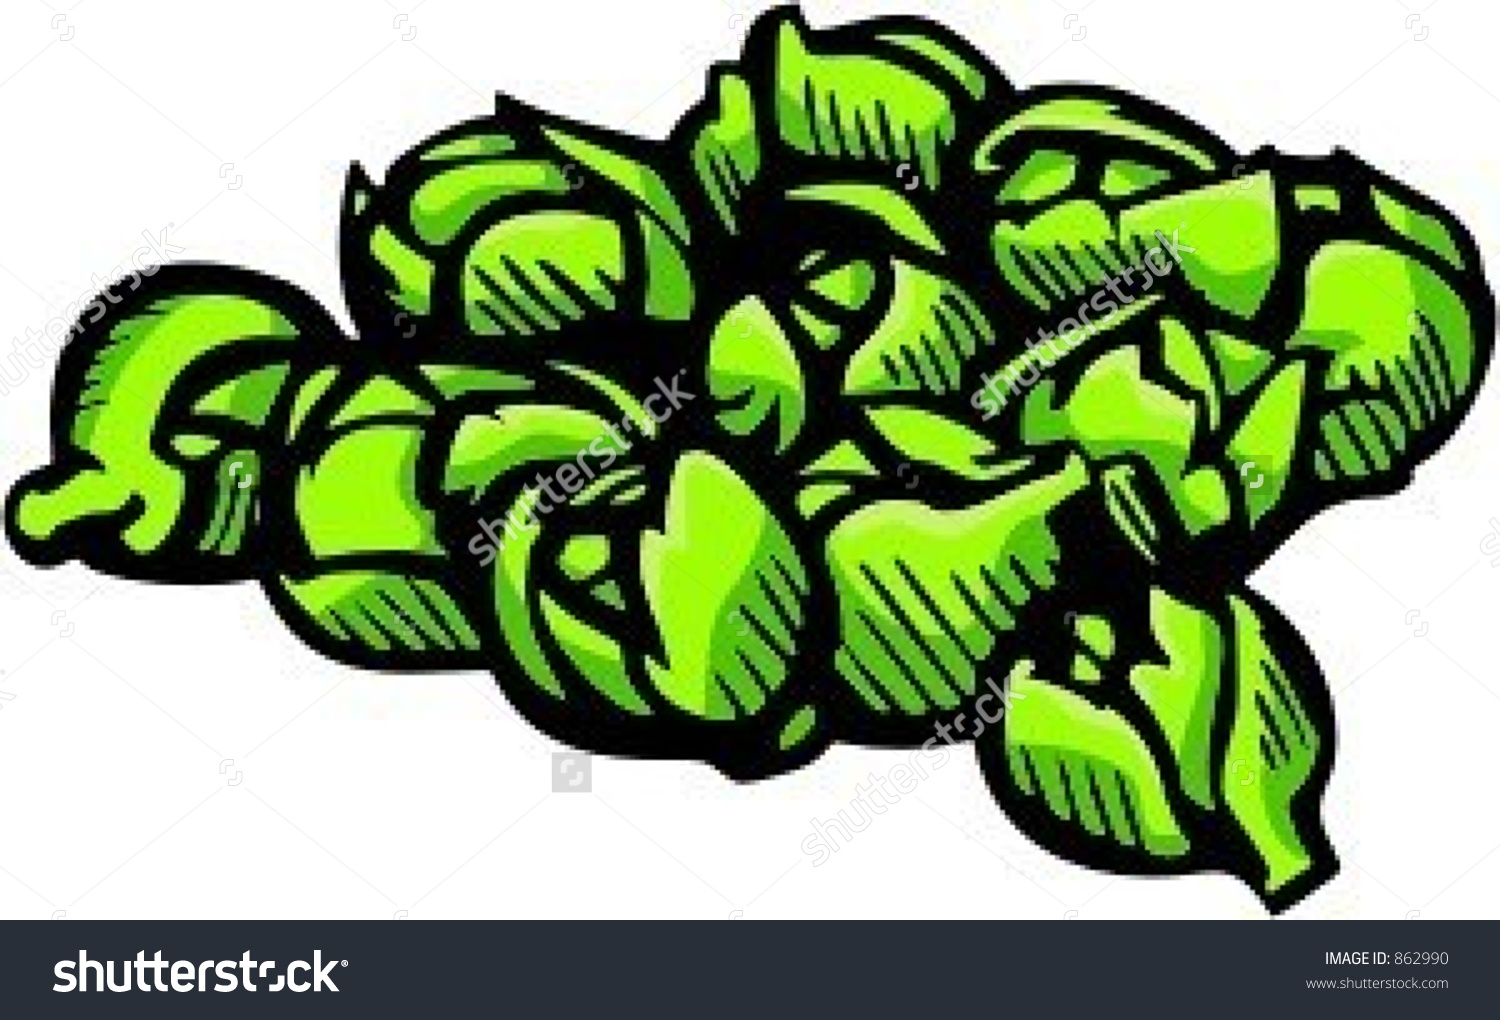 Brussel sprout people free clipart.